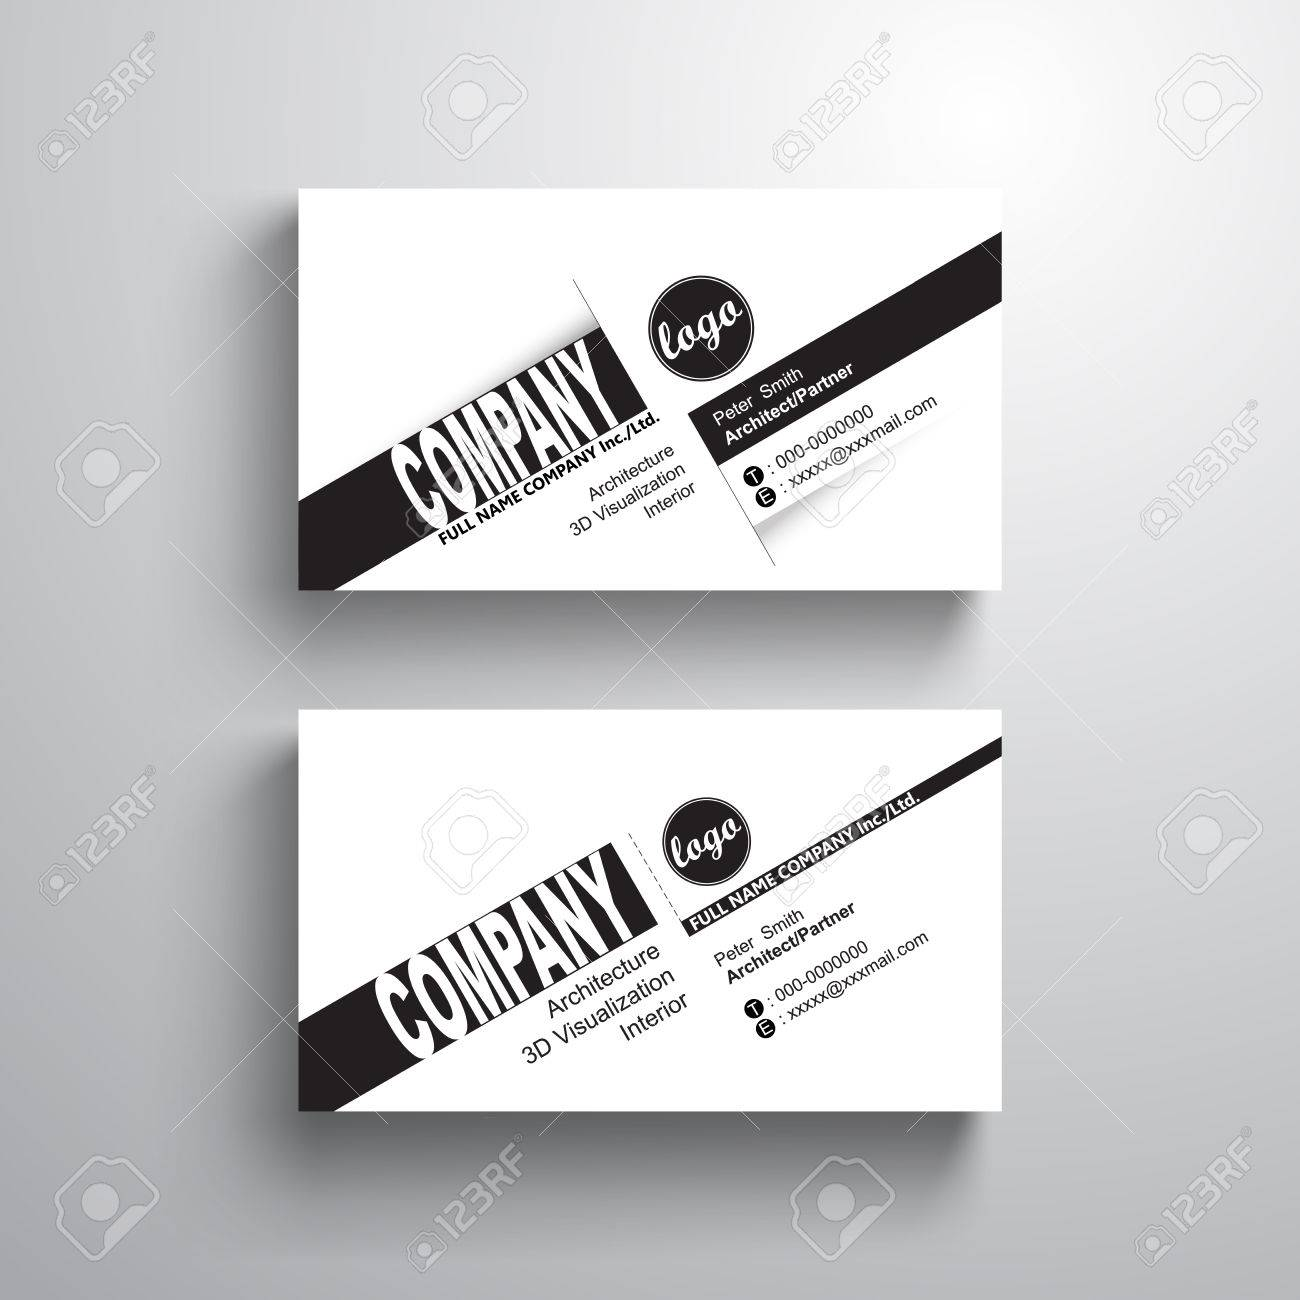 Black white design typography name card template business card black white design typography name card template business card minimalist style stock vector wajeb Choice Image